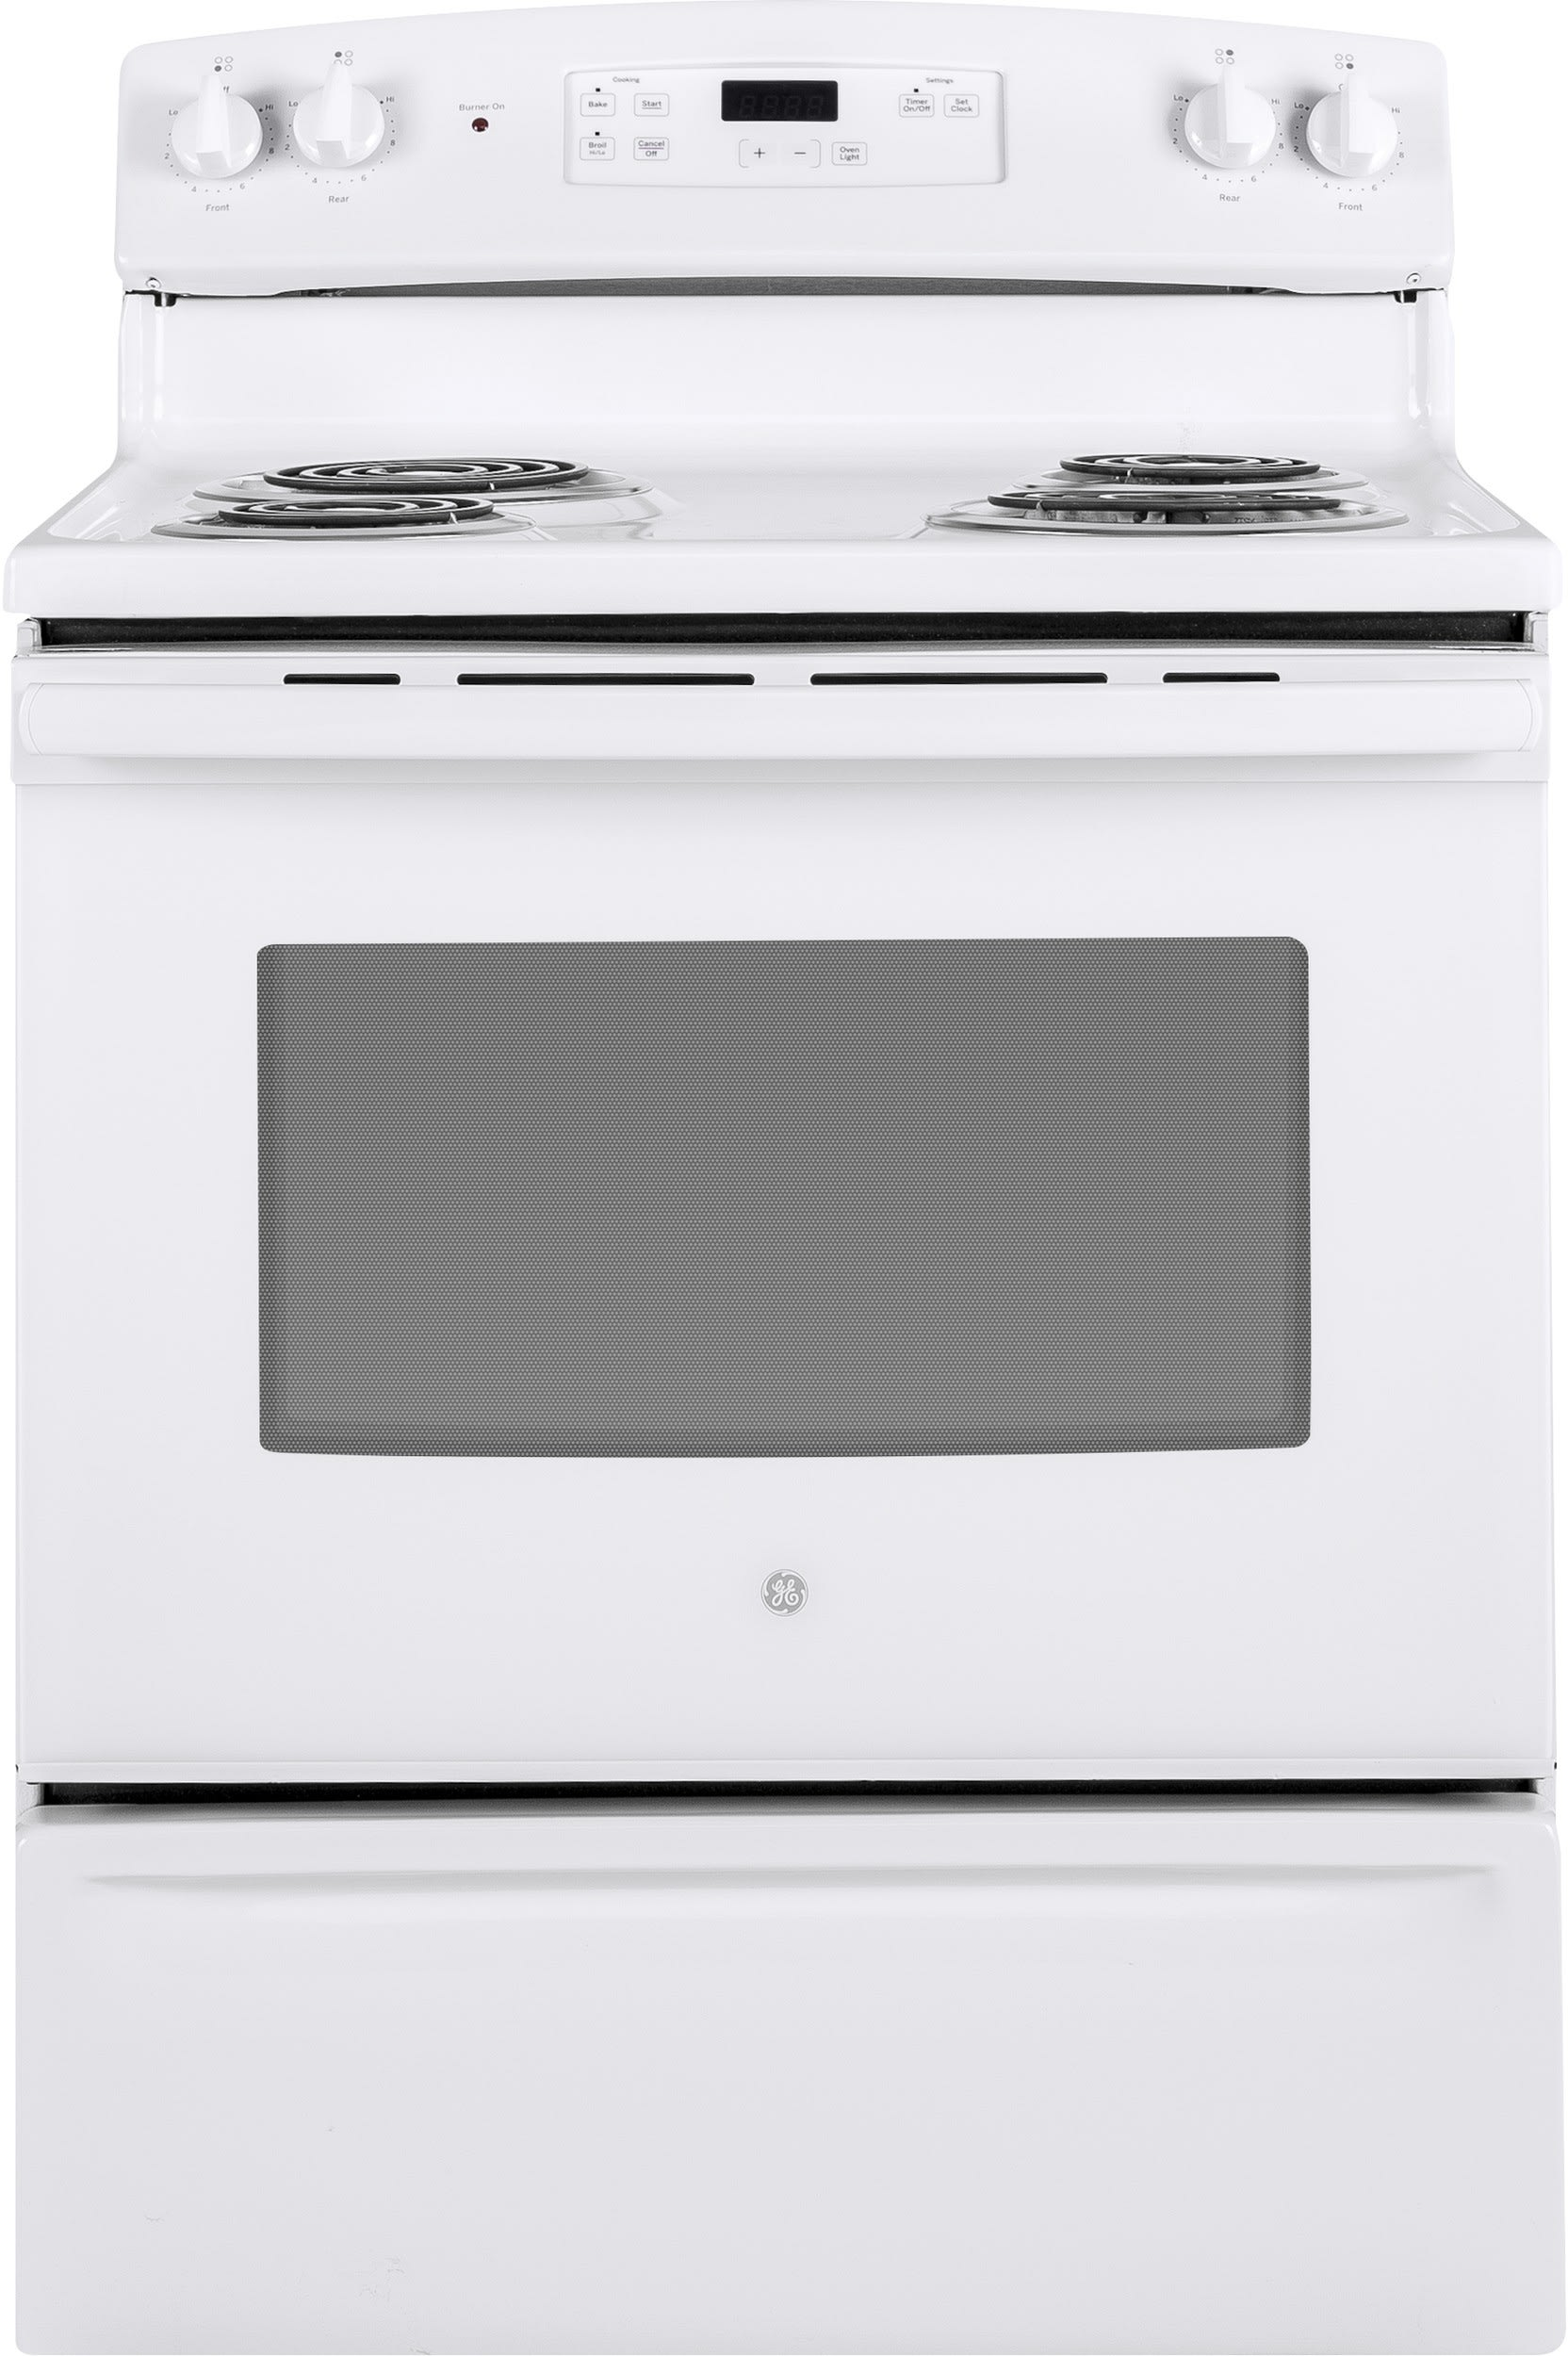 Ge Jbs30dkww 30 Inch Freestanding Electric Range With Dual